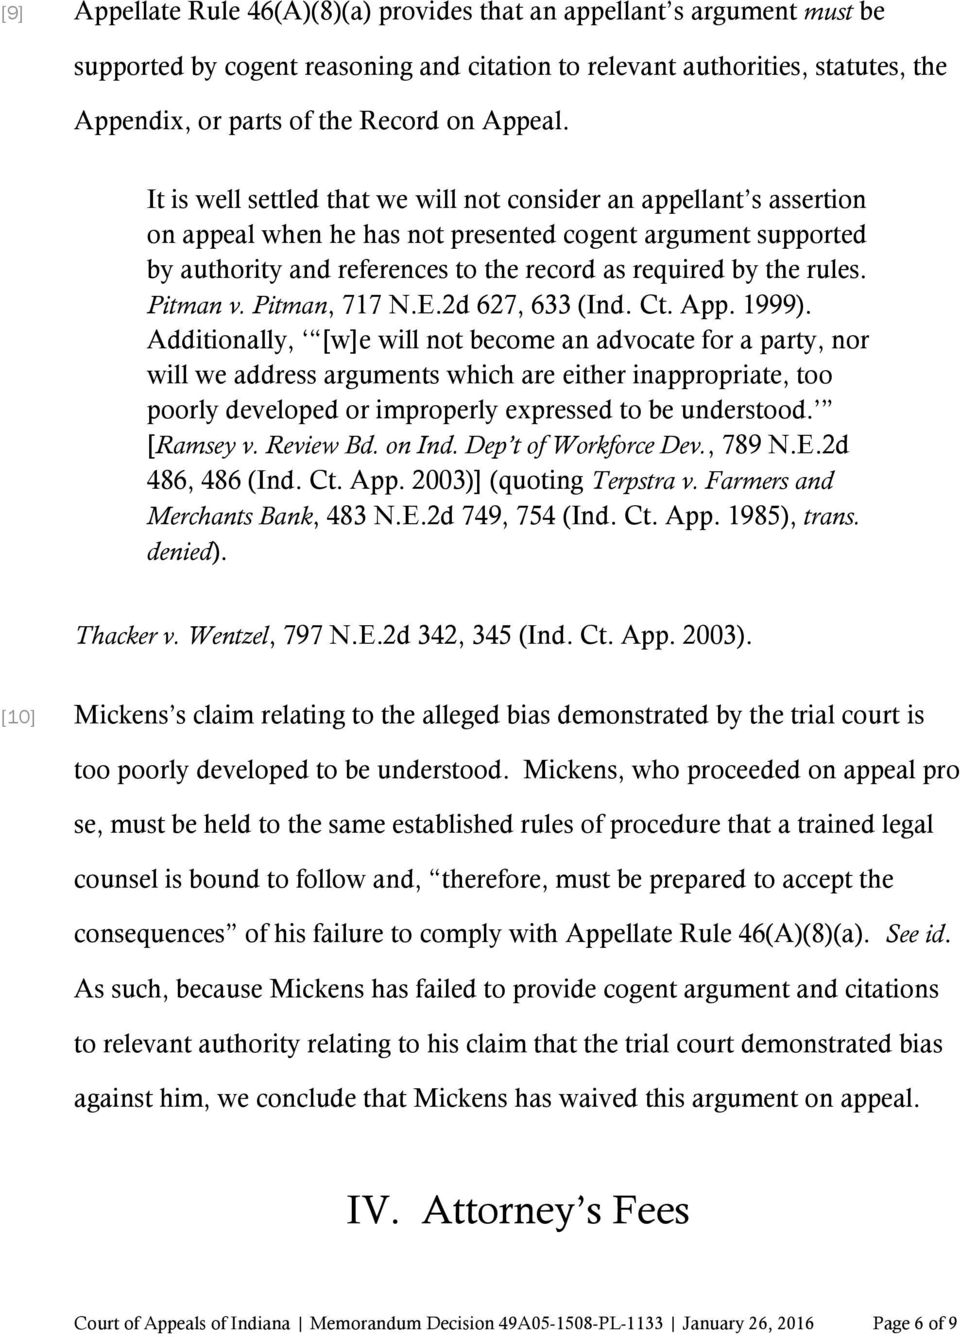 It is well settled that we will not consider an appellant s assertion on appeal when he has not presented cogent argument supported by authority and references to the record as required by the rules.